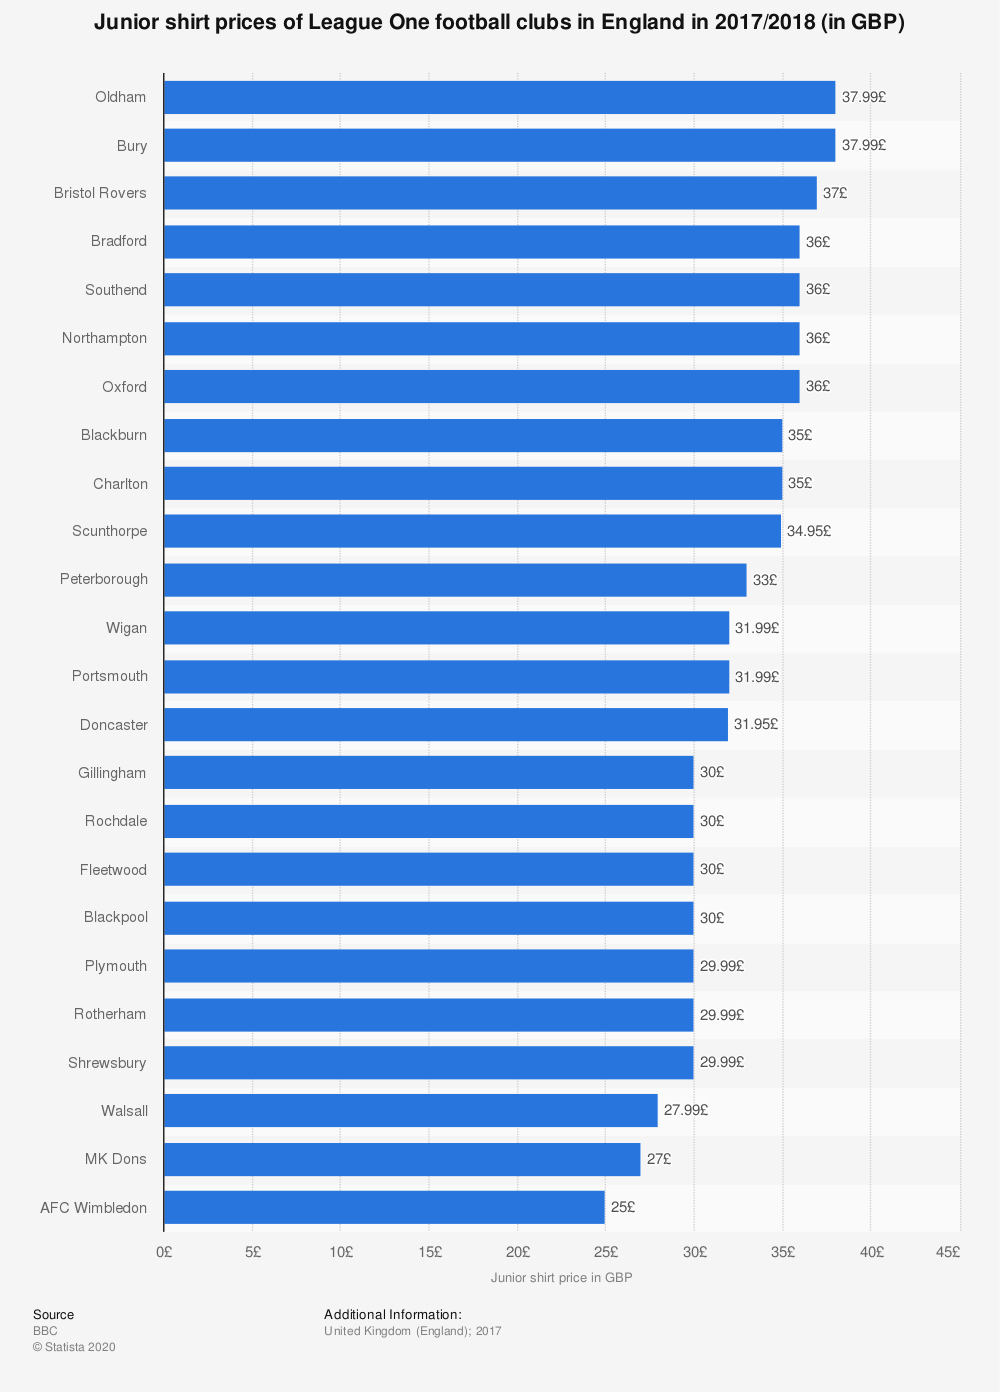 Statistic: Junior shirt prices of League One football clubs in England in 2017/2018 (in GBP) | Statista